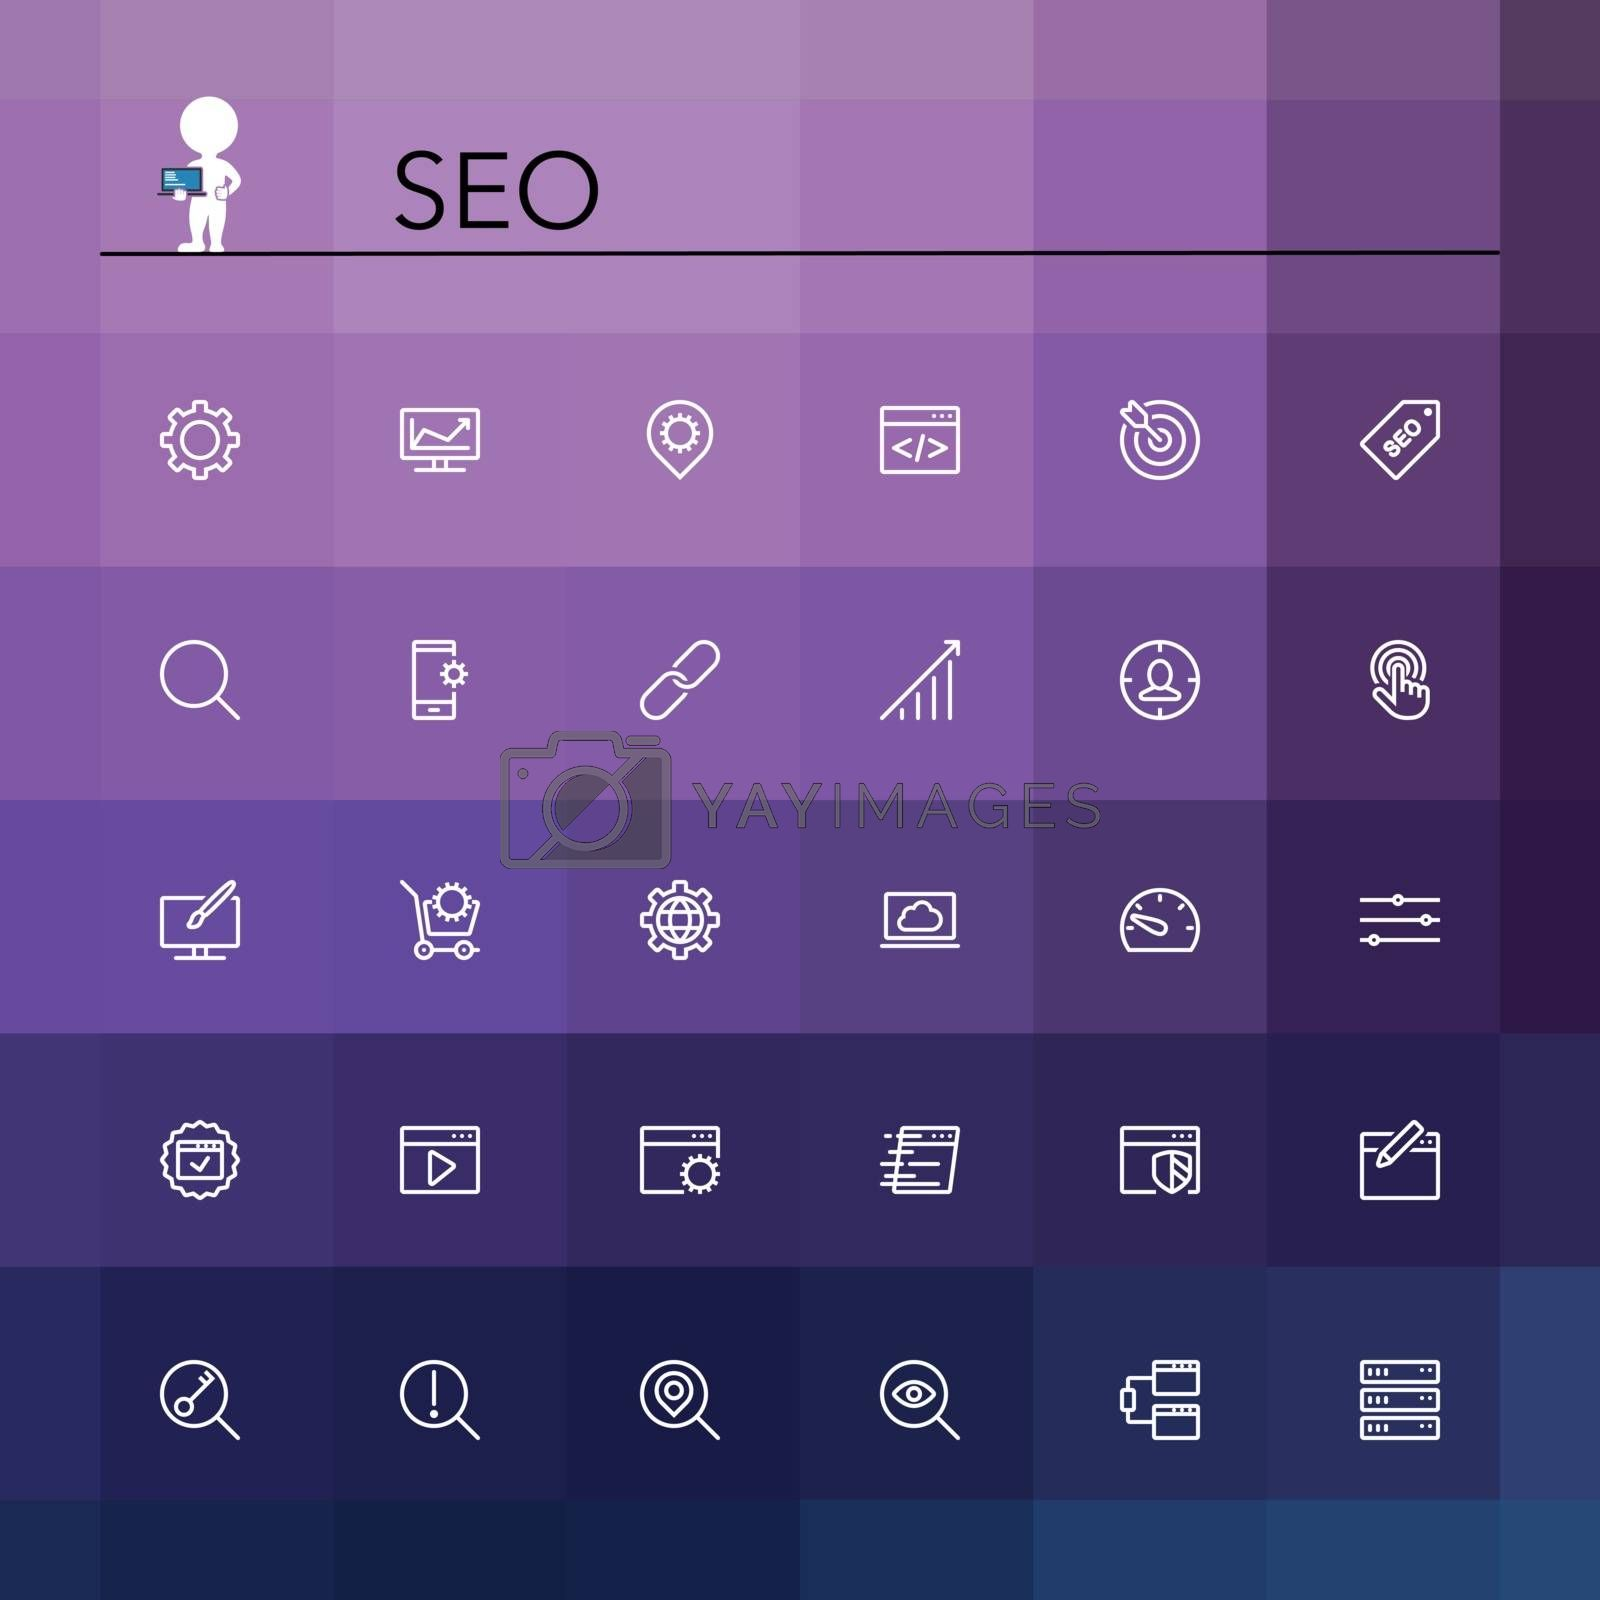 Royalty free image of SEO Line Icons by Anatoly